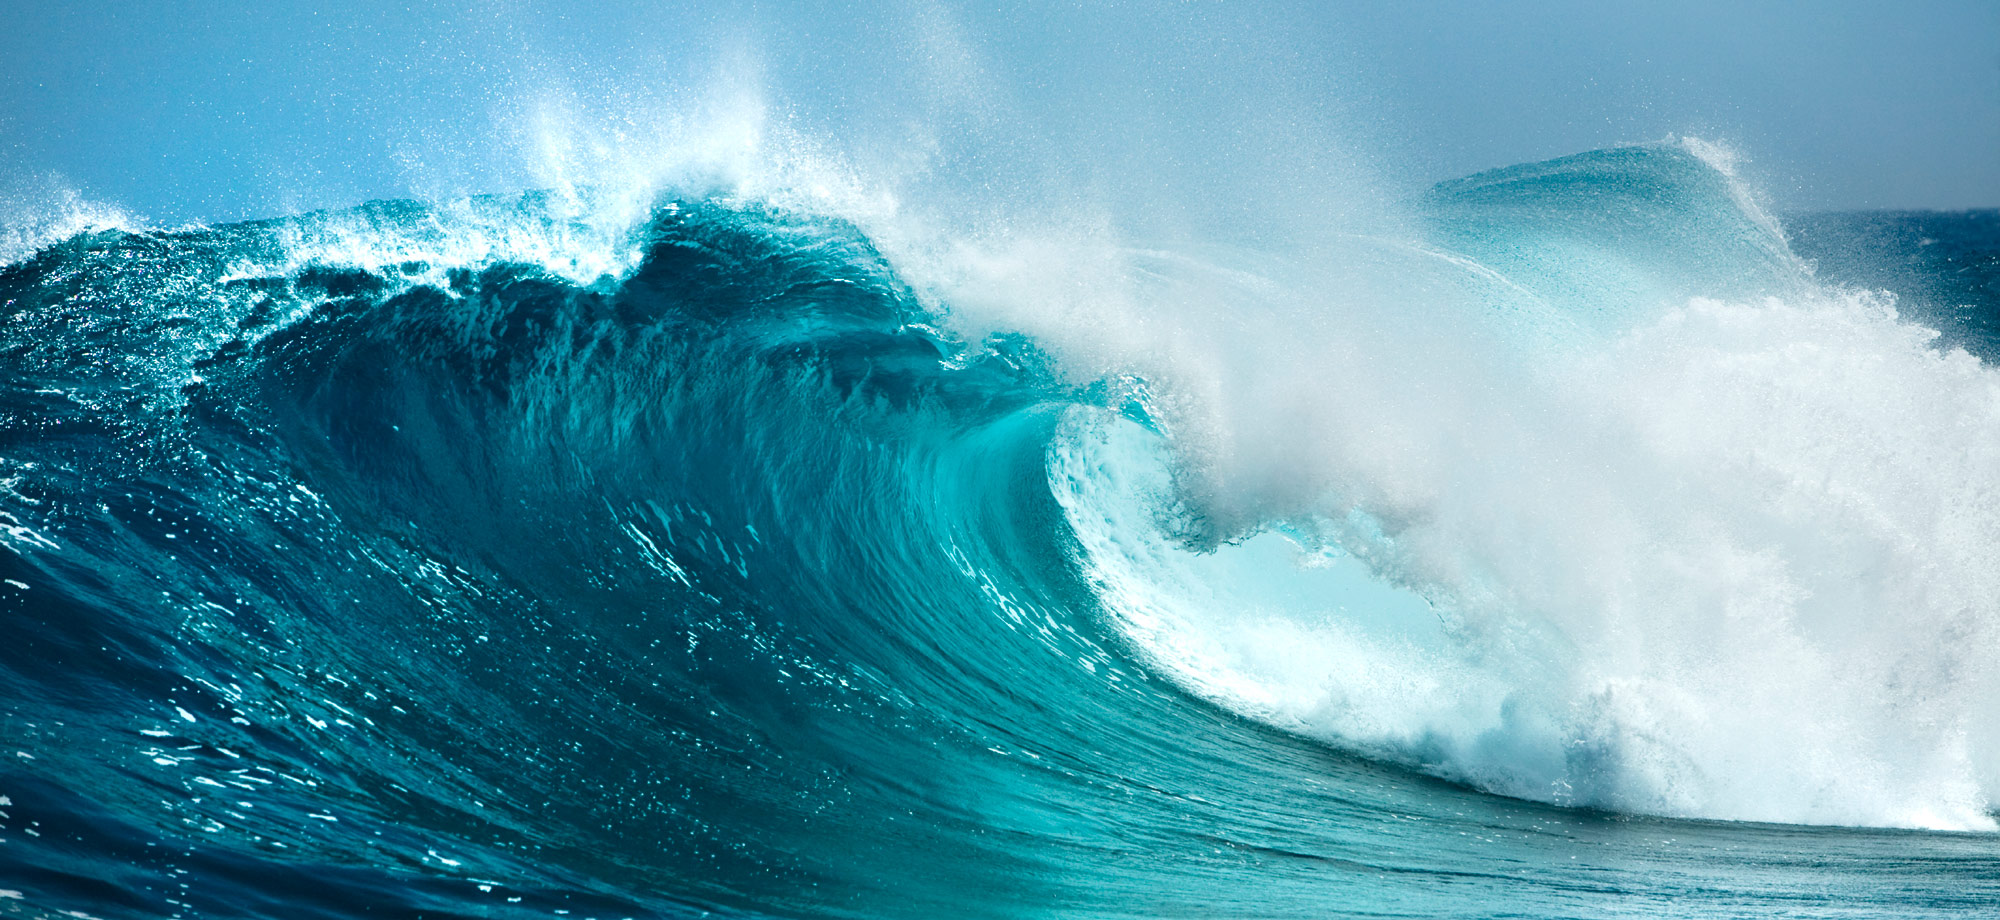 Ocean Energy Wave Image